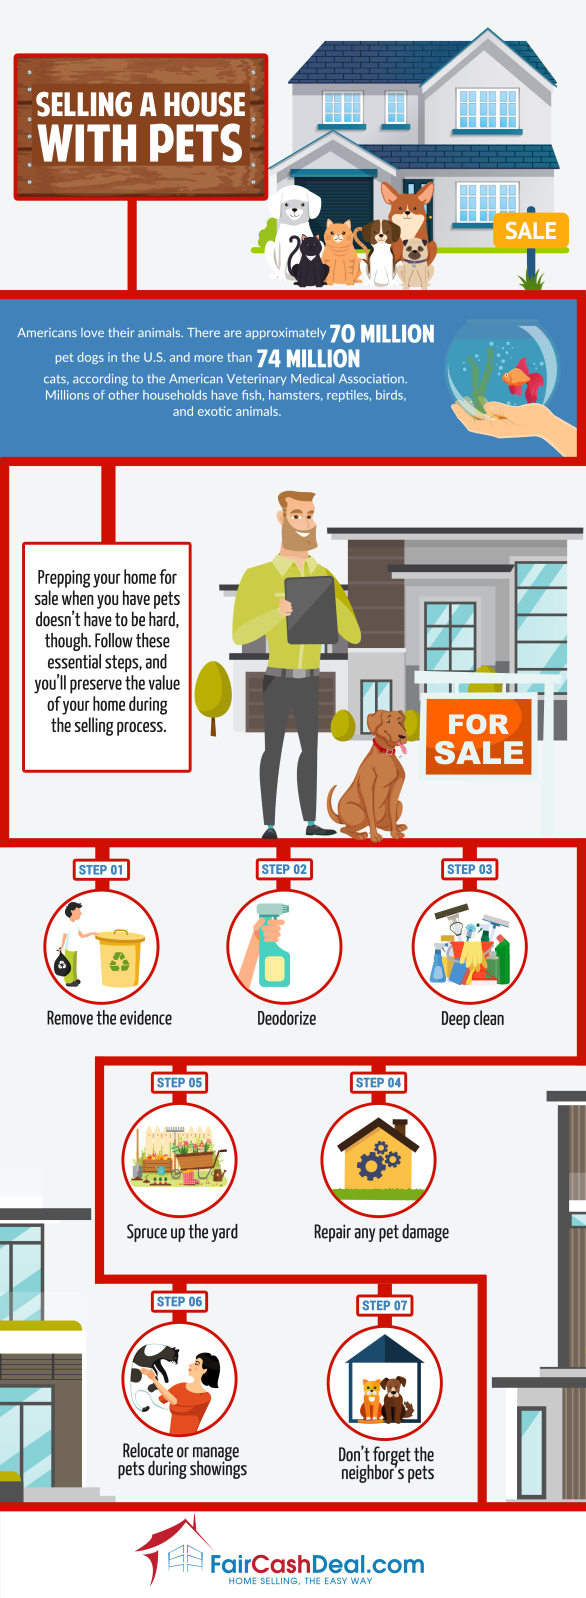 selling-house-with-pets-infographic-plaza